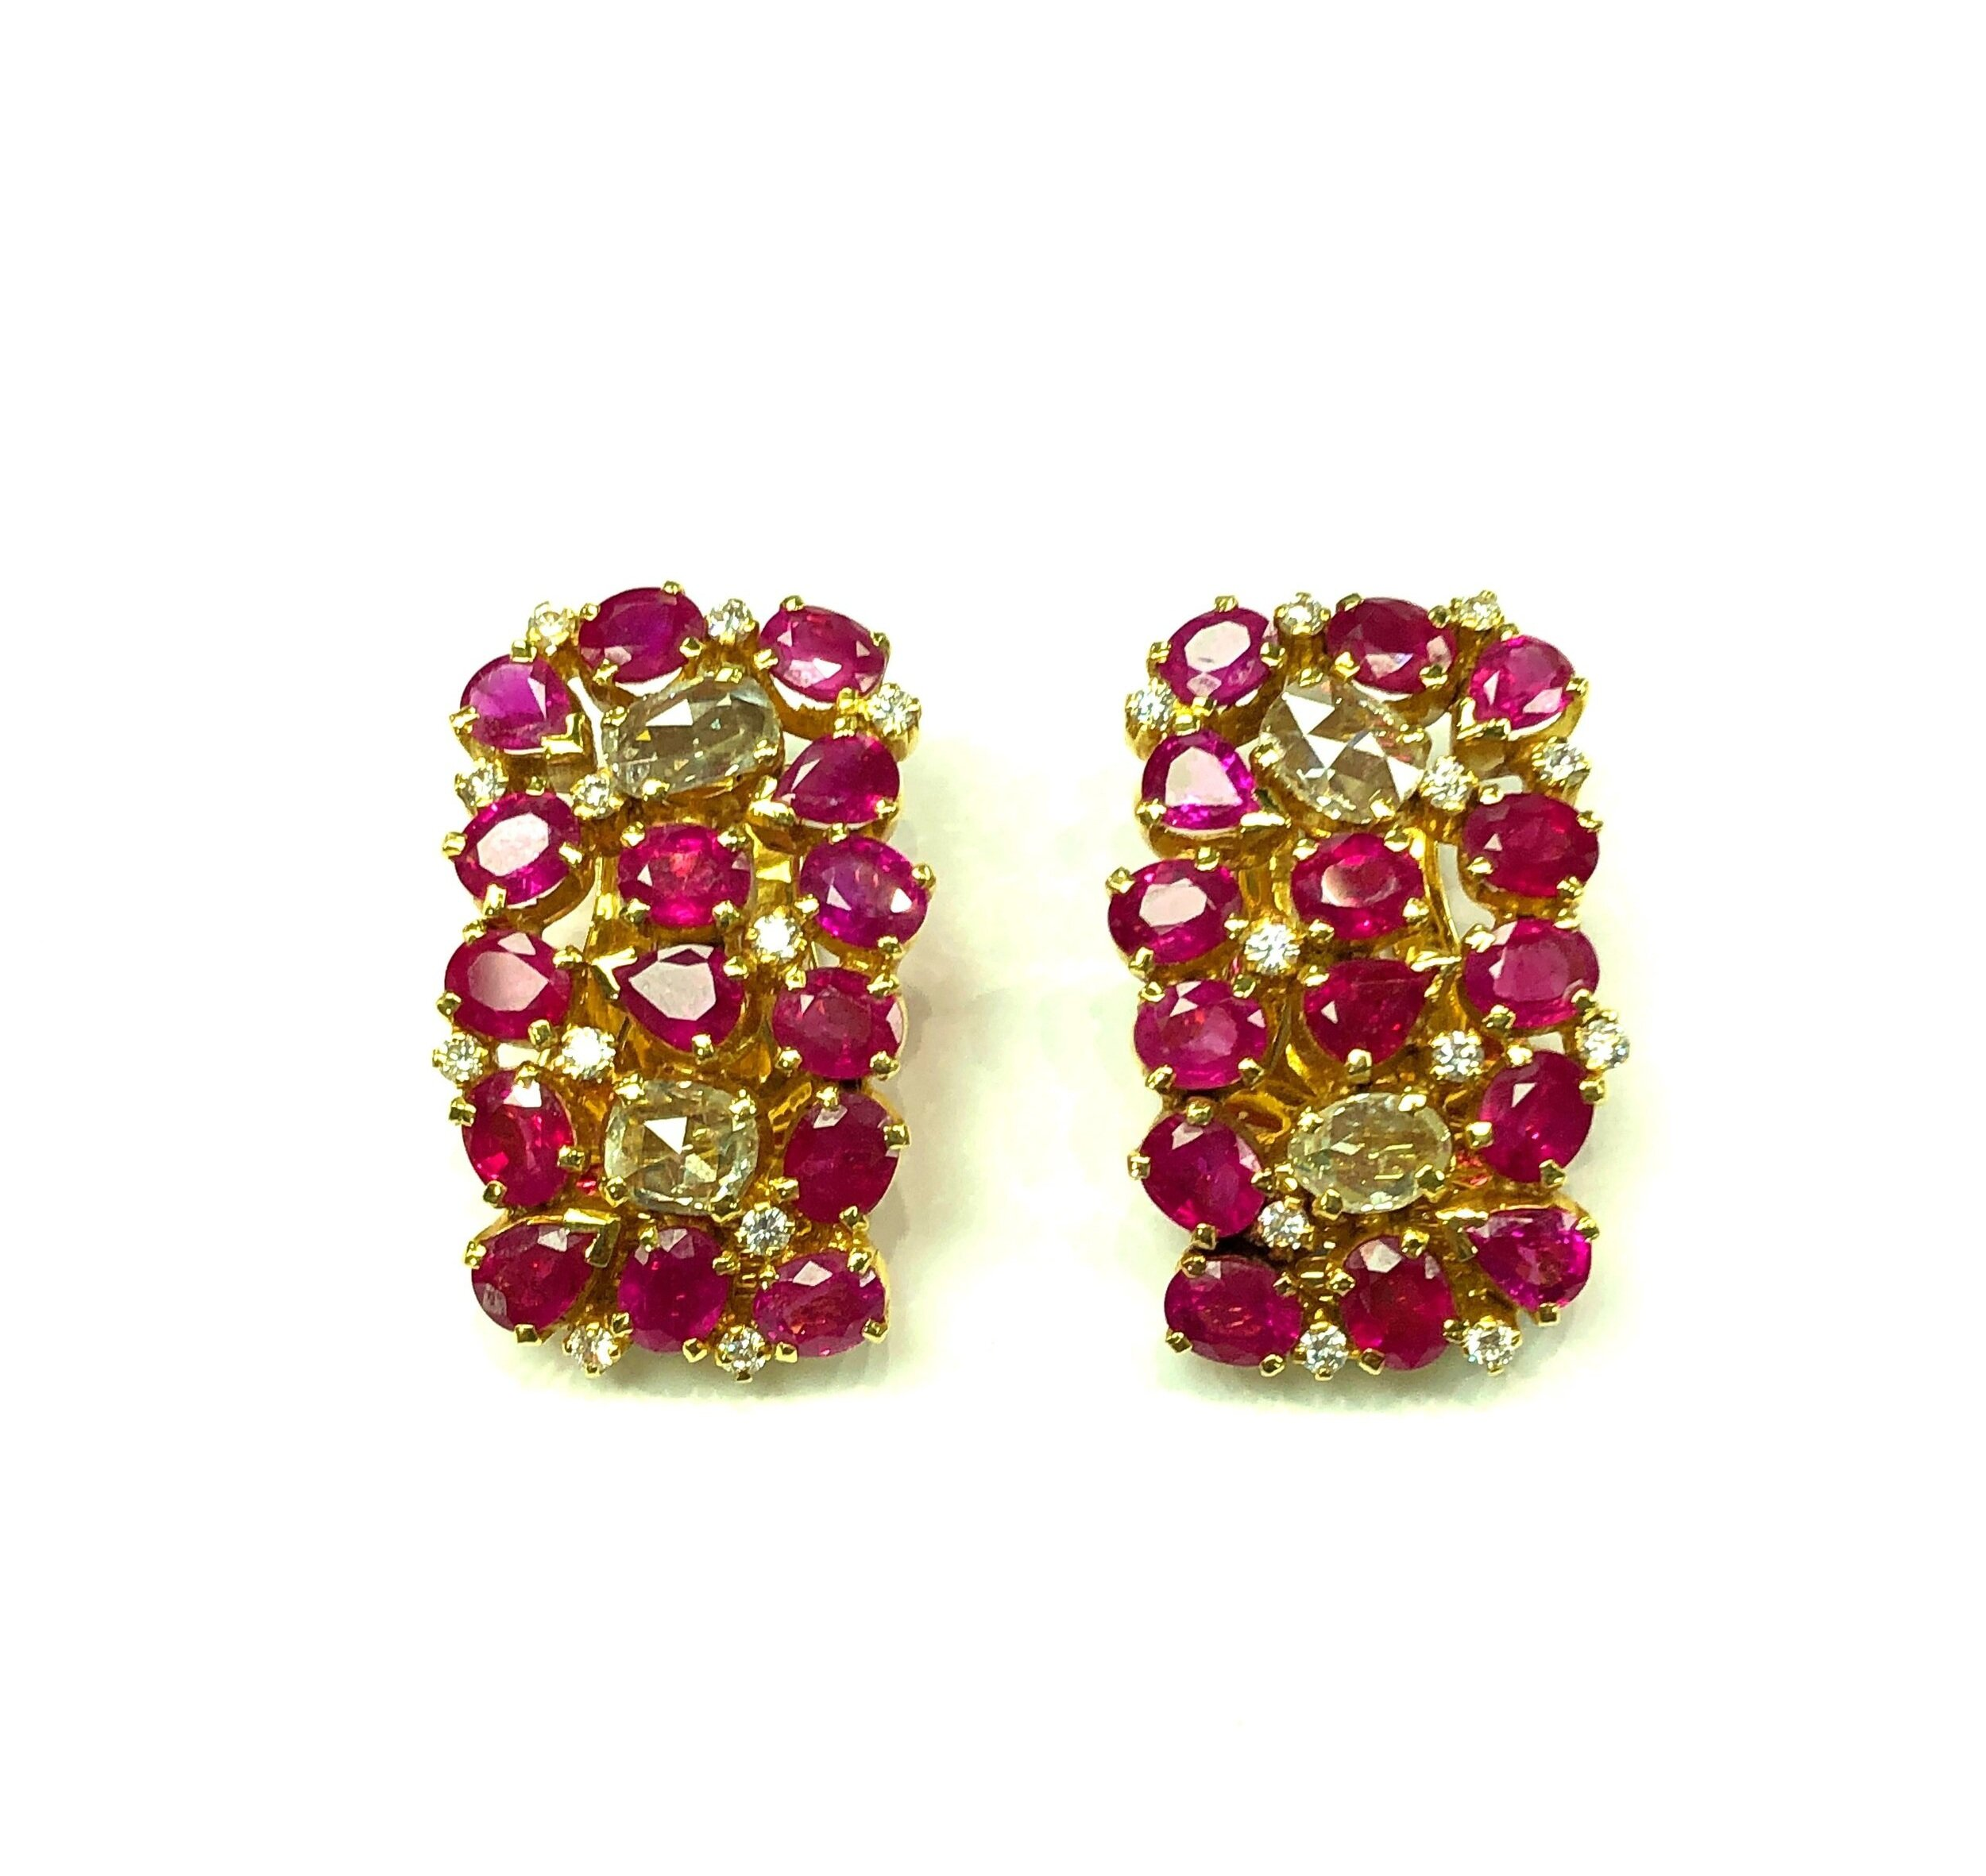 Important Burmese Ruby Earclips, 18kt Yellow Gold with Old Mine Cut Diamonds  Est. US$ 22,000-28,000  including matching necklace